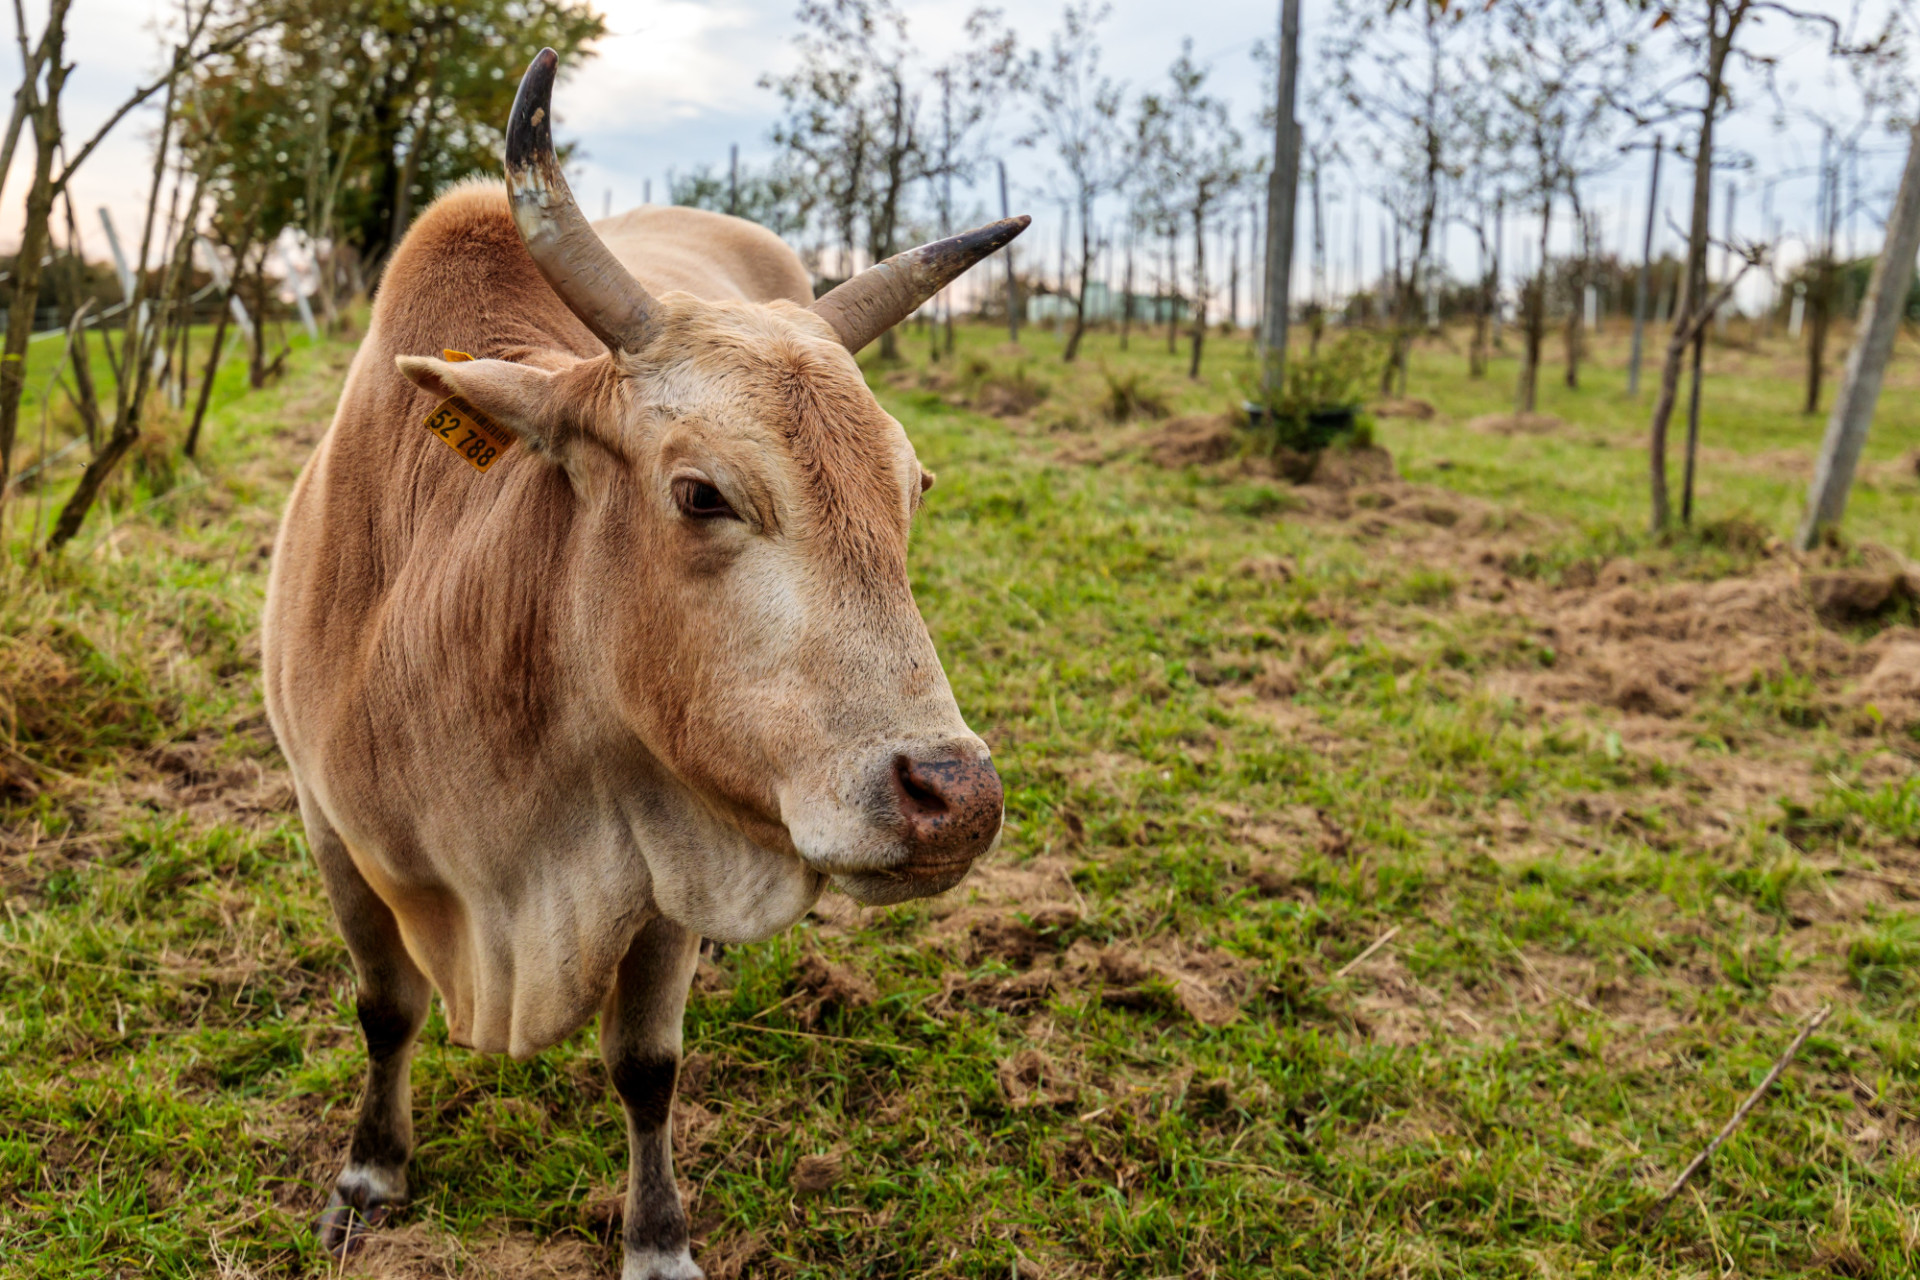 Brown cow with horns on a field in autumn